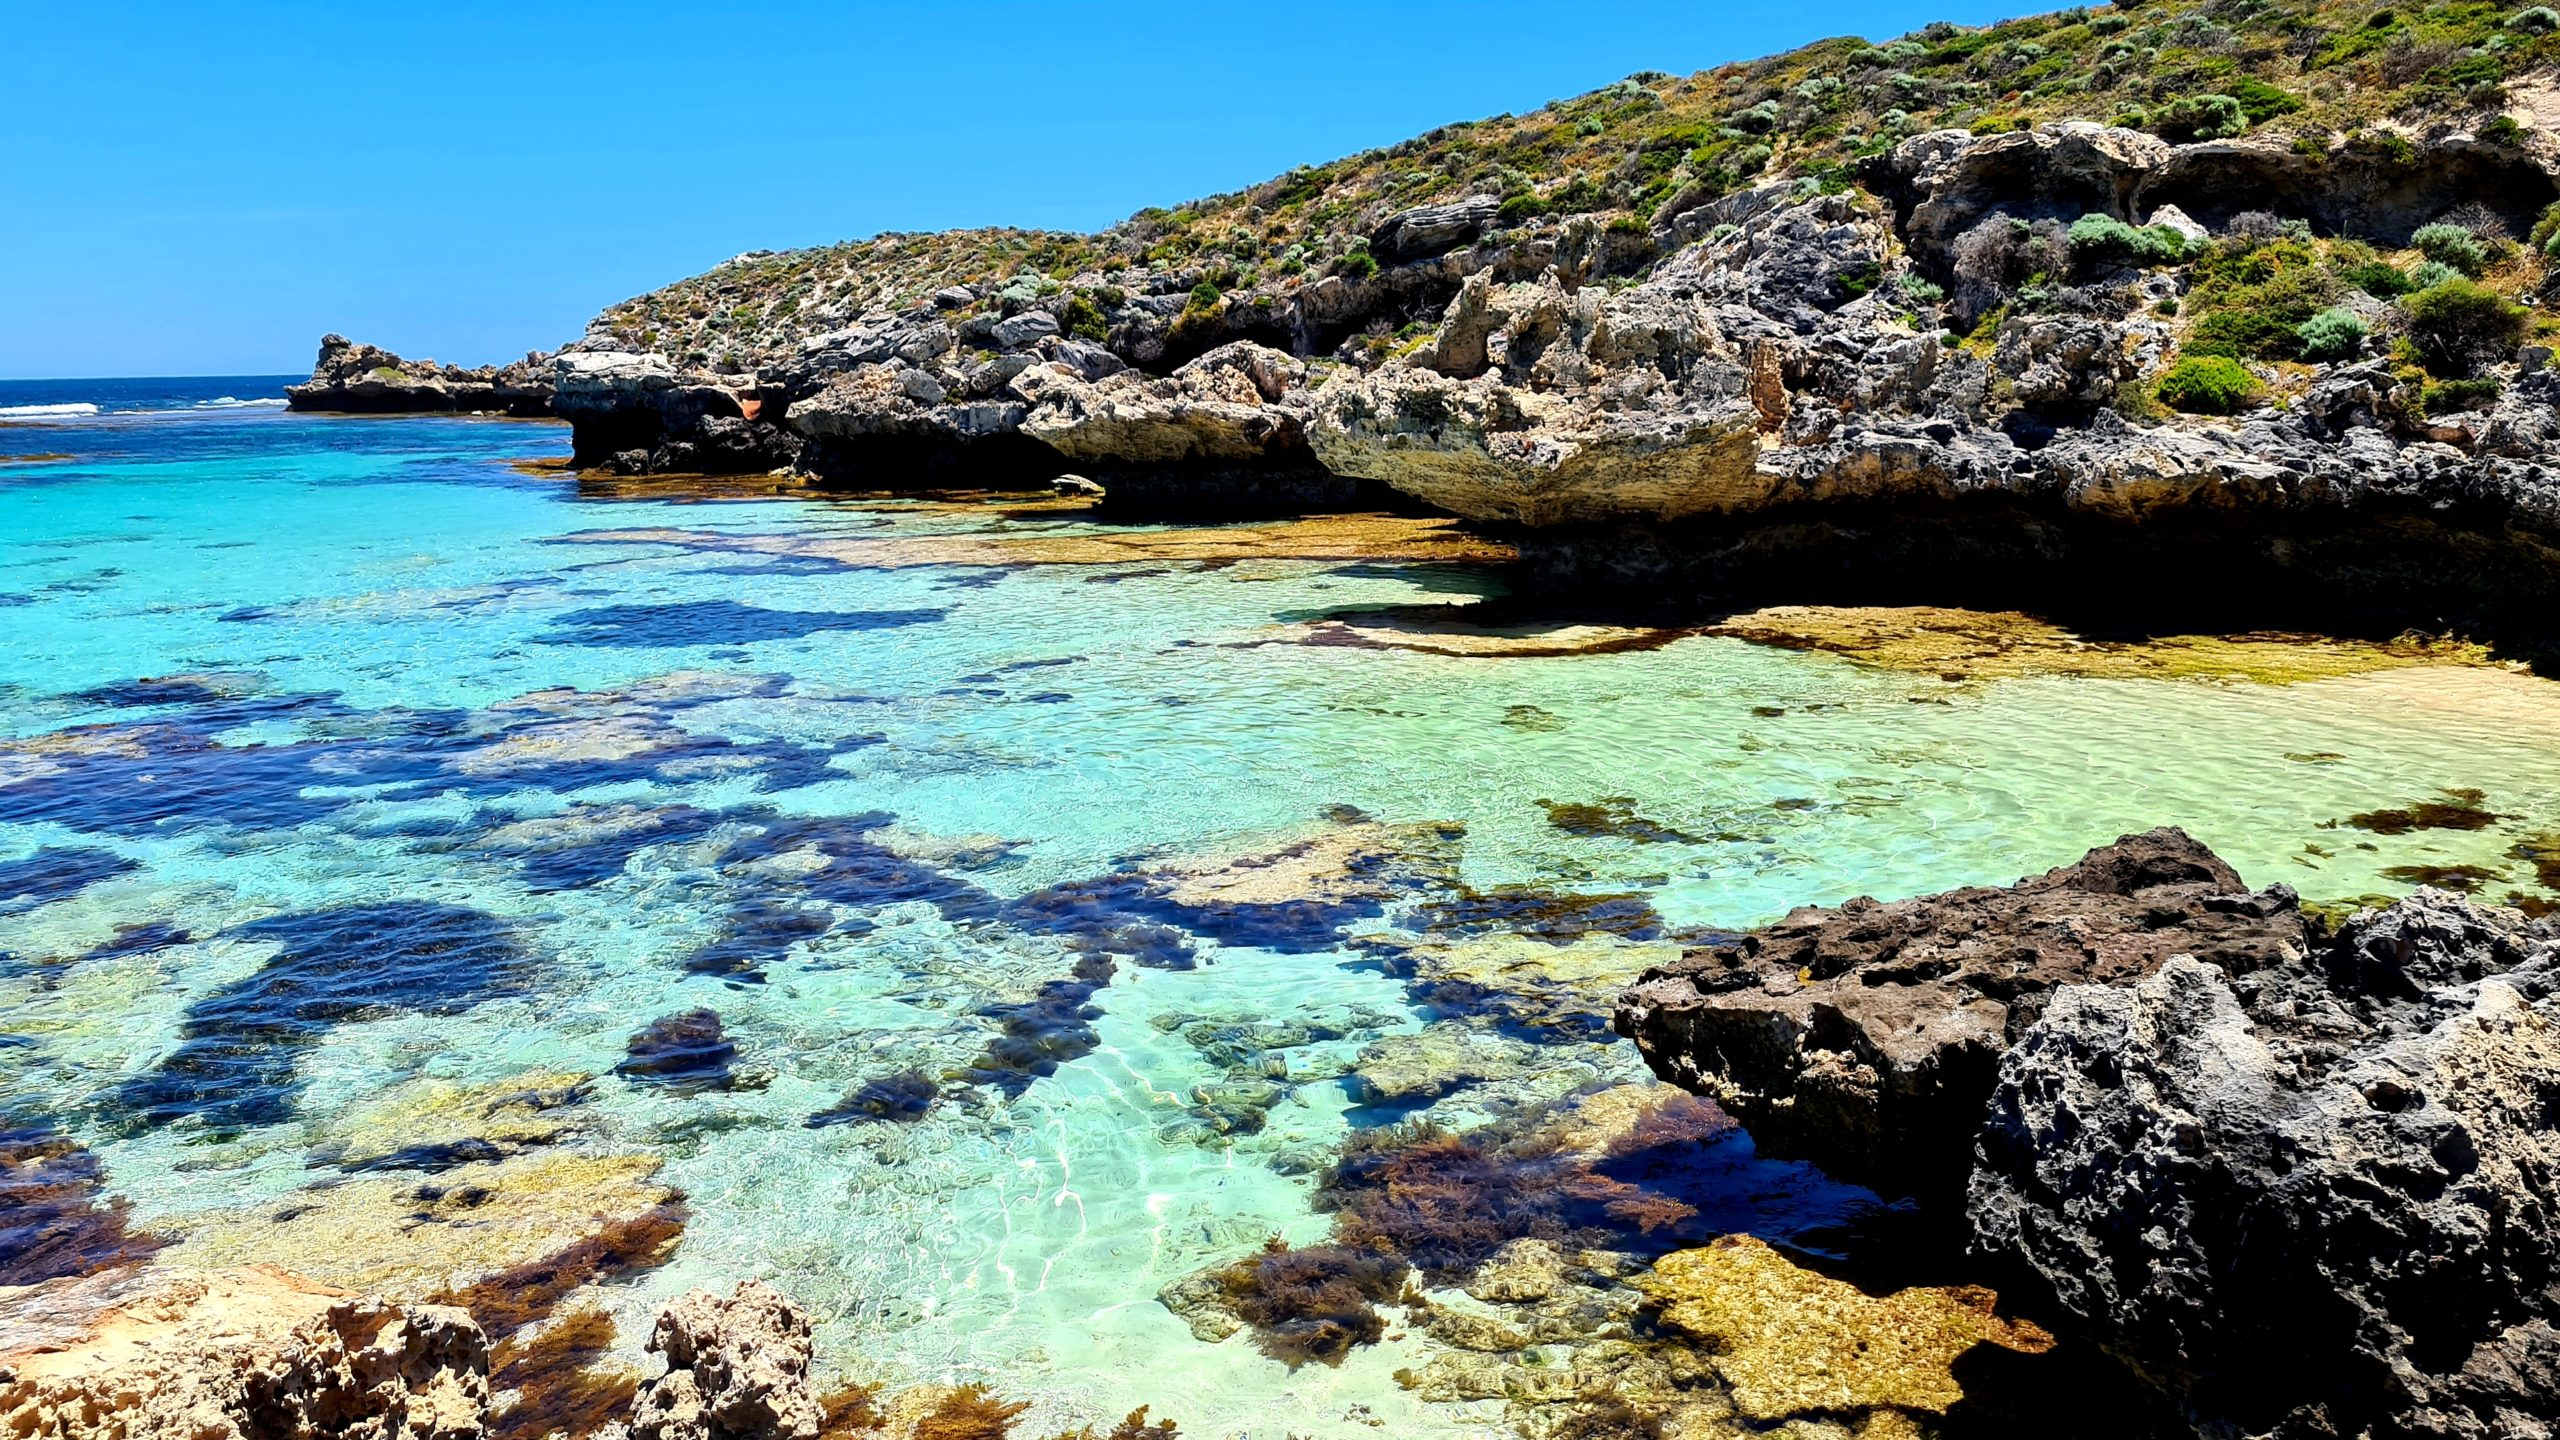 Two-day Rottnest Island itinerary